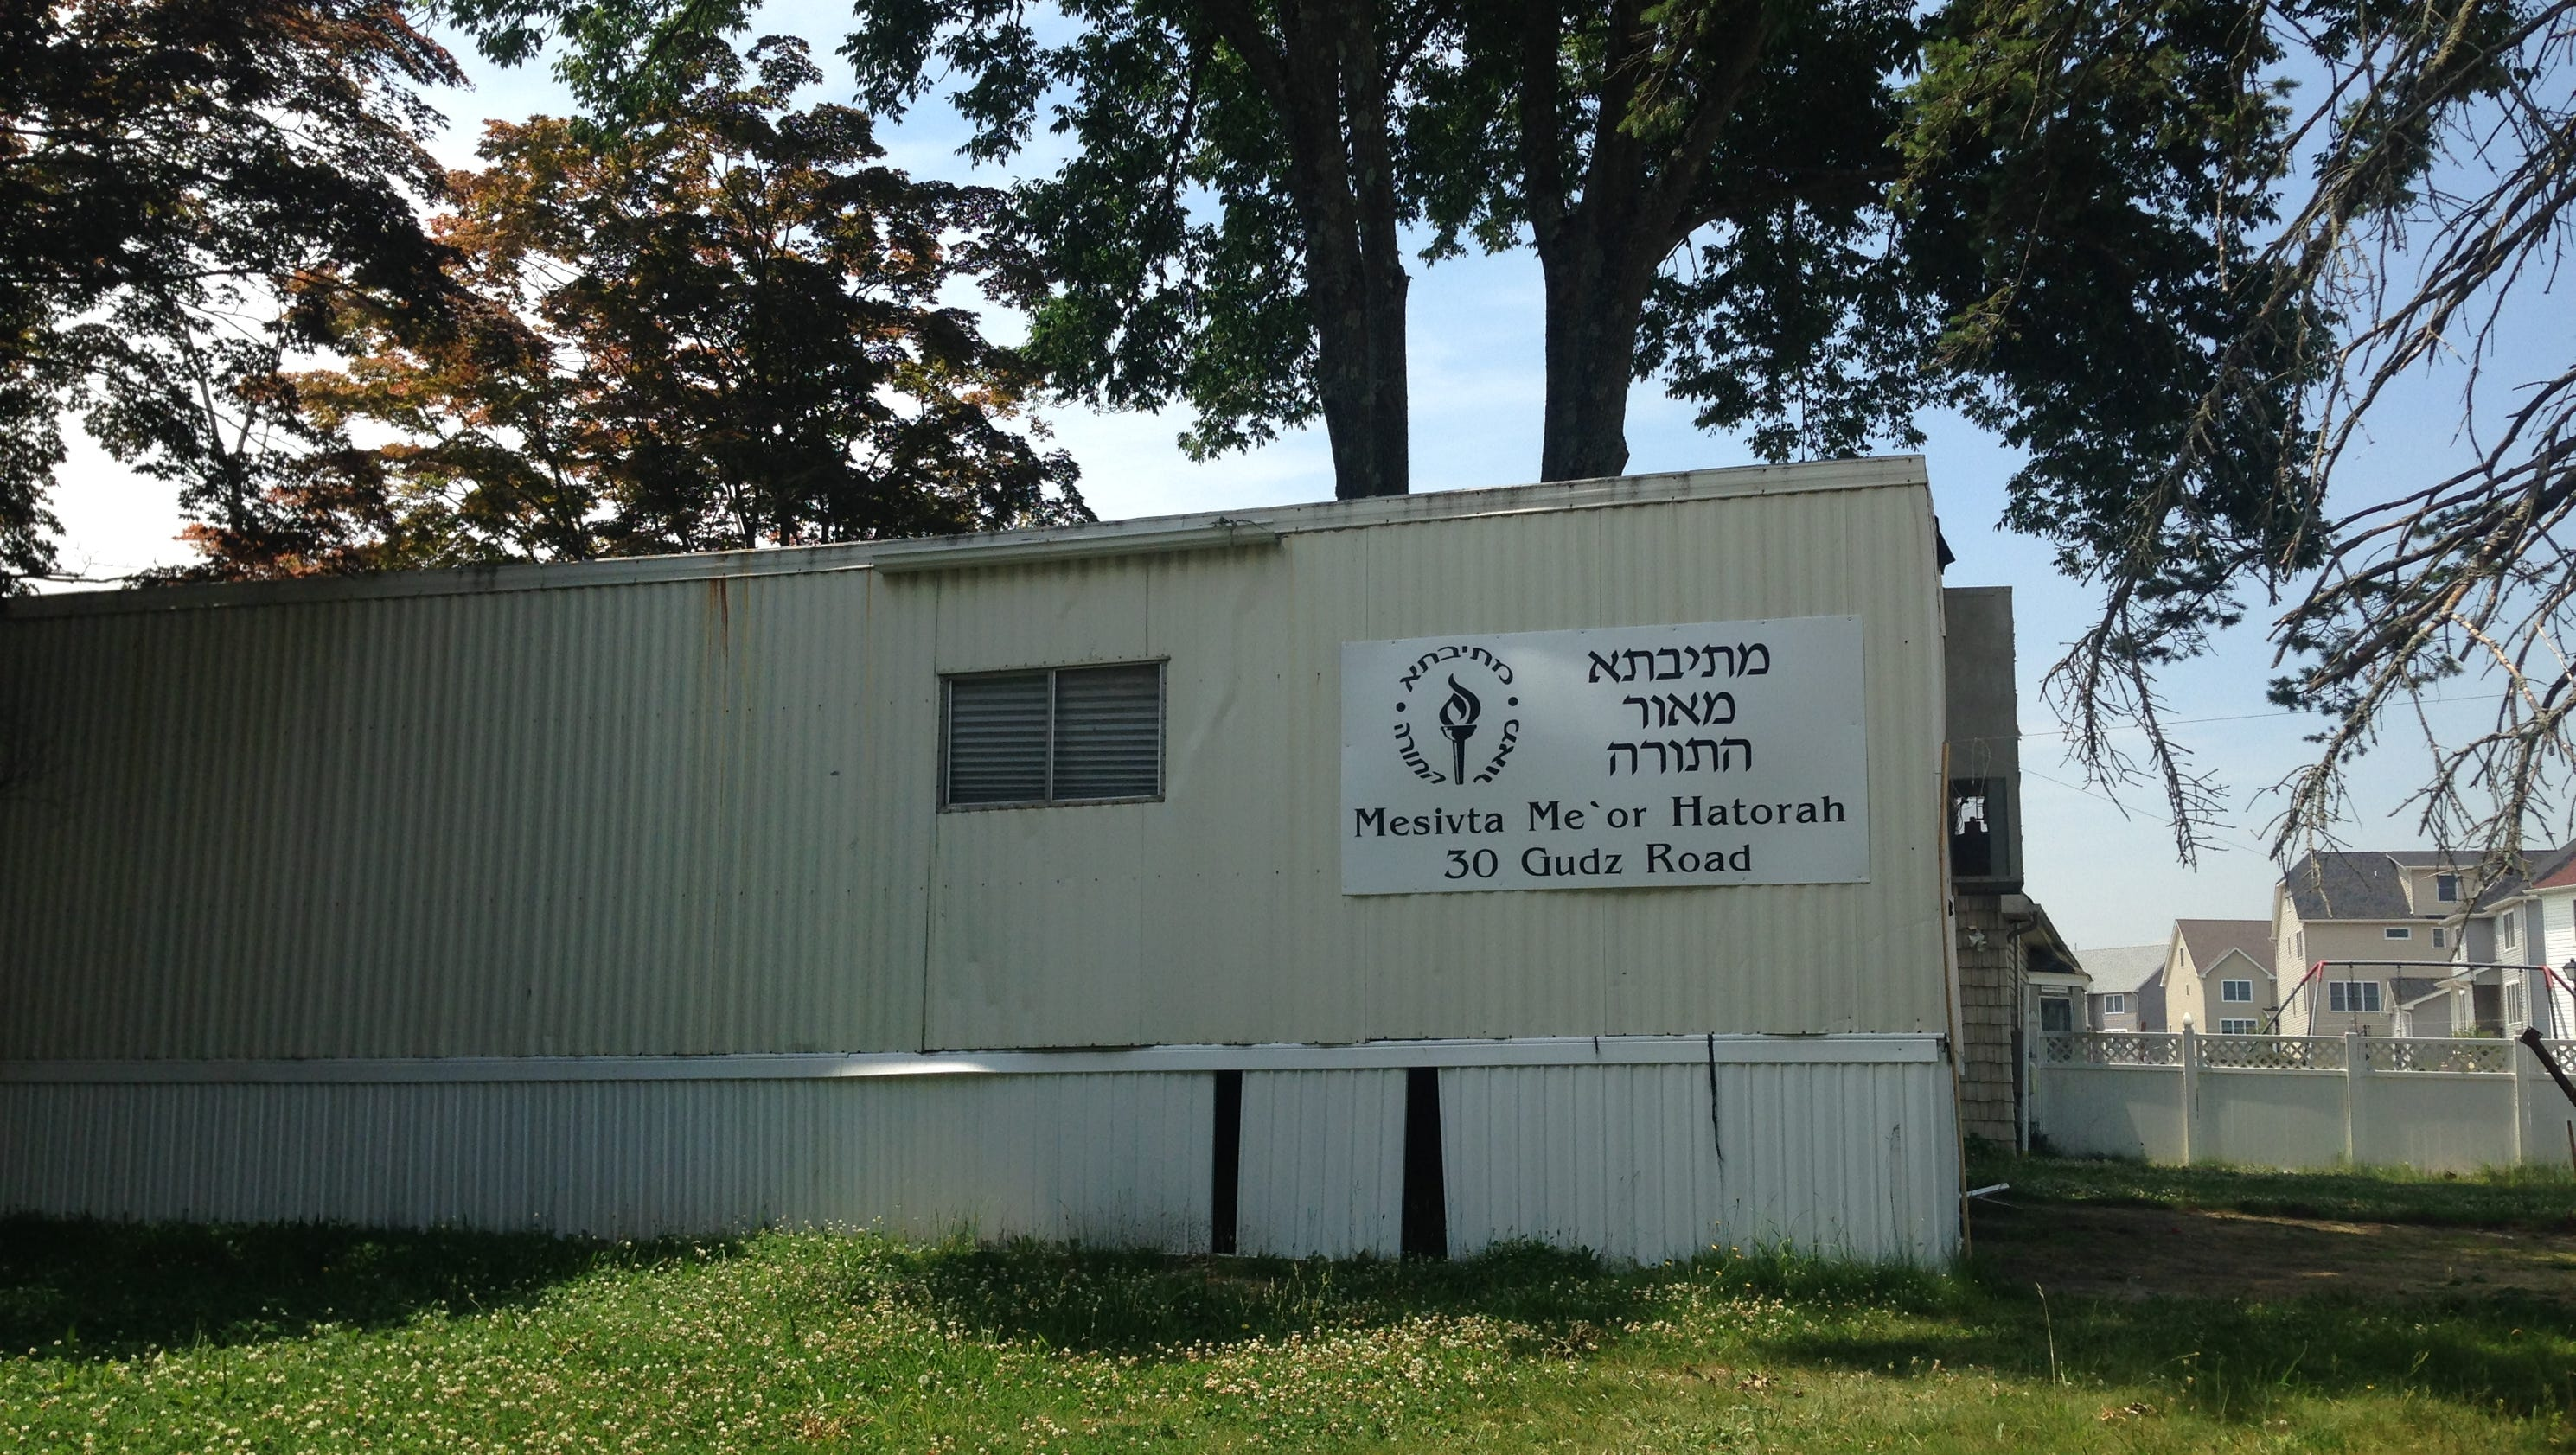 Lakewood Planners Reject Home Turned Yeshiva